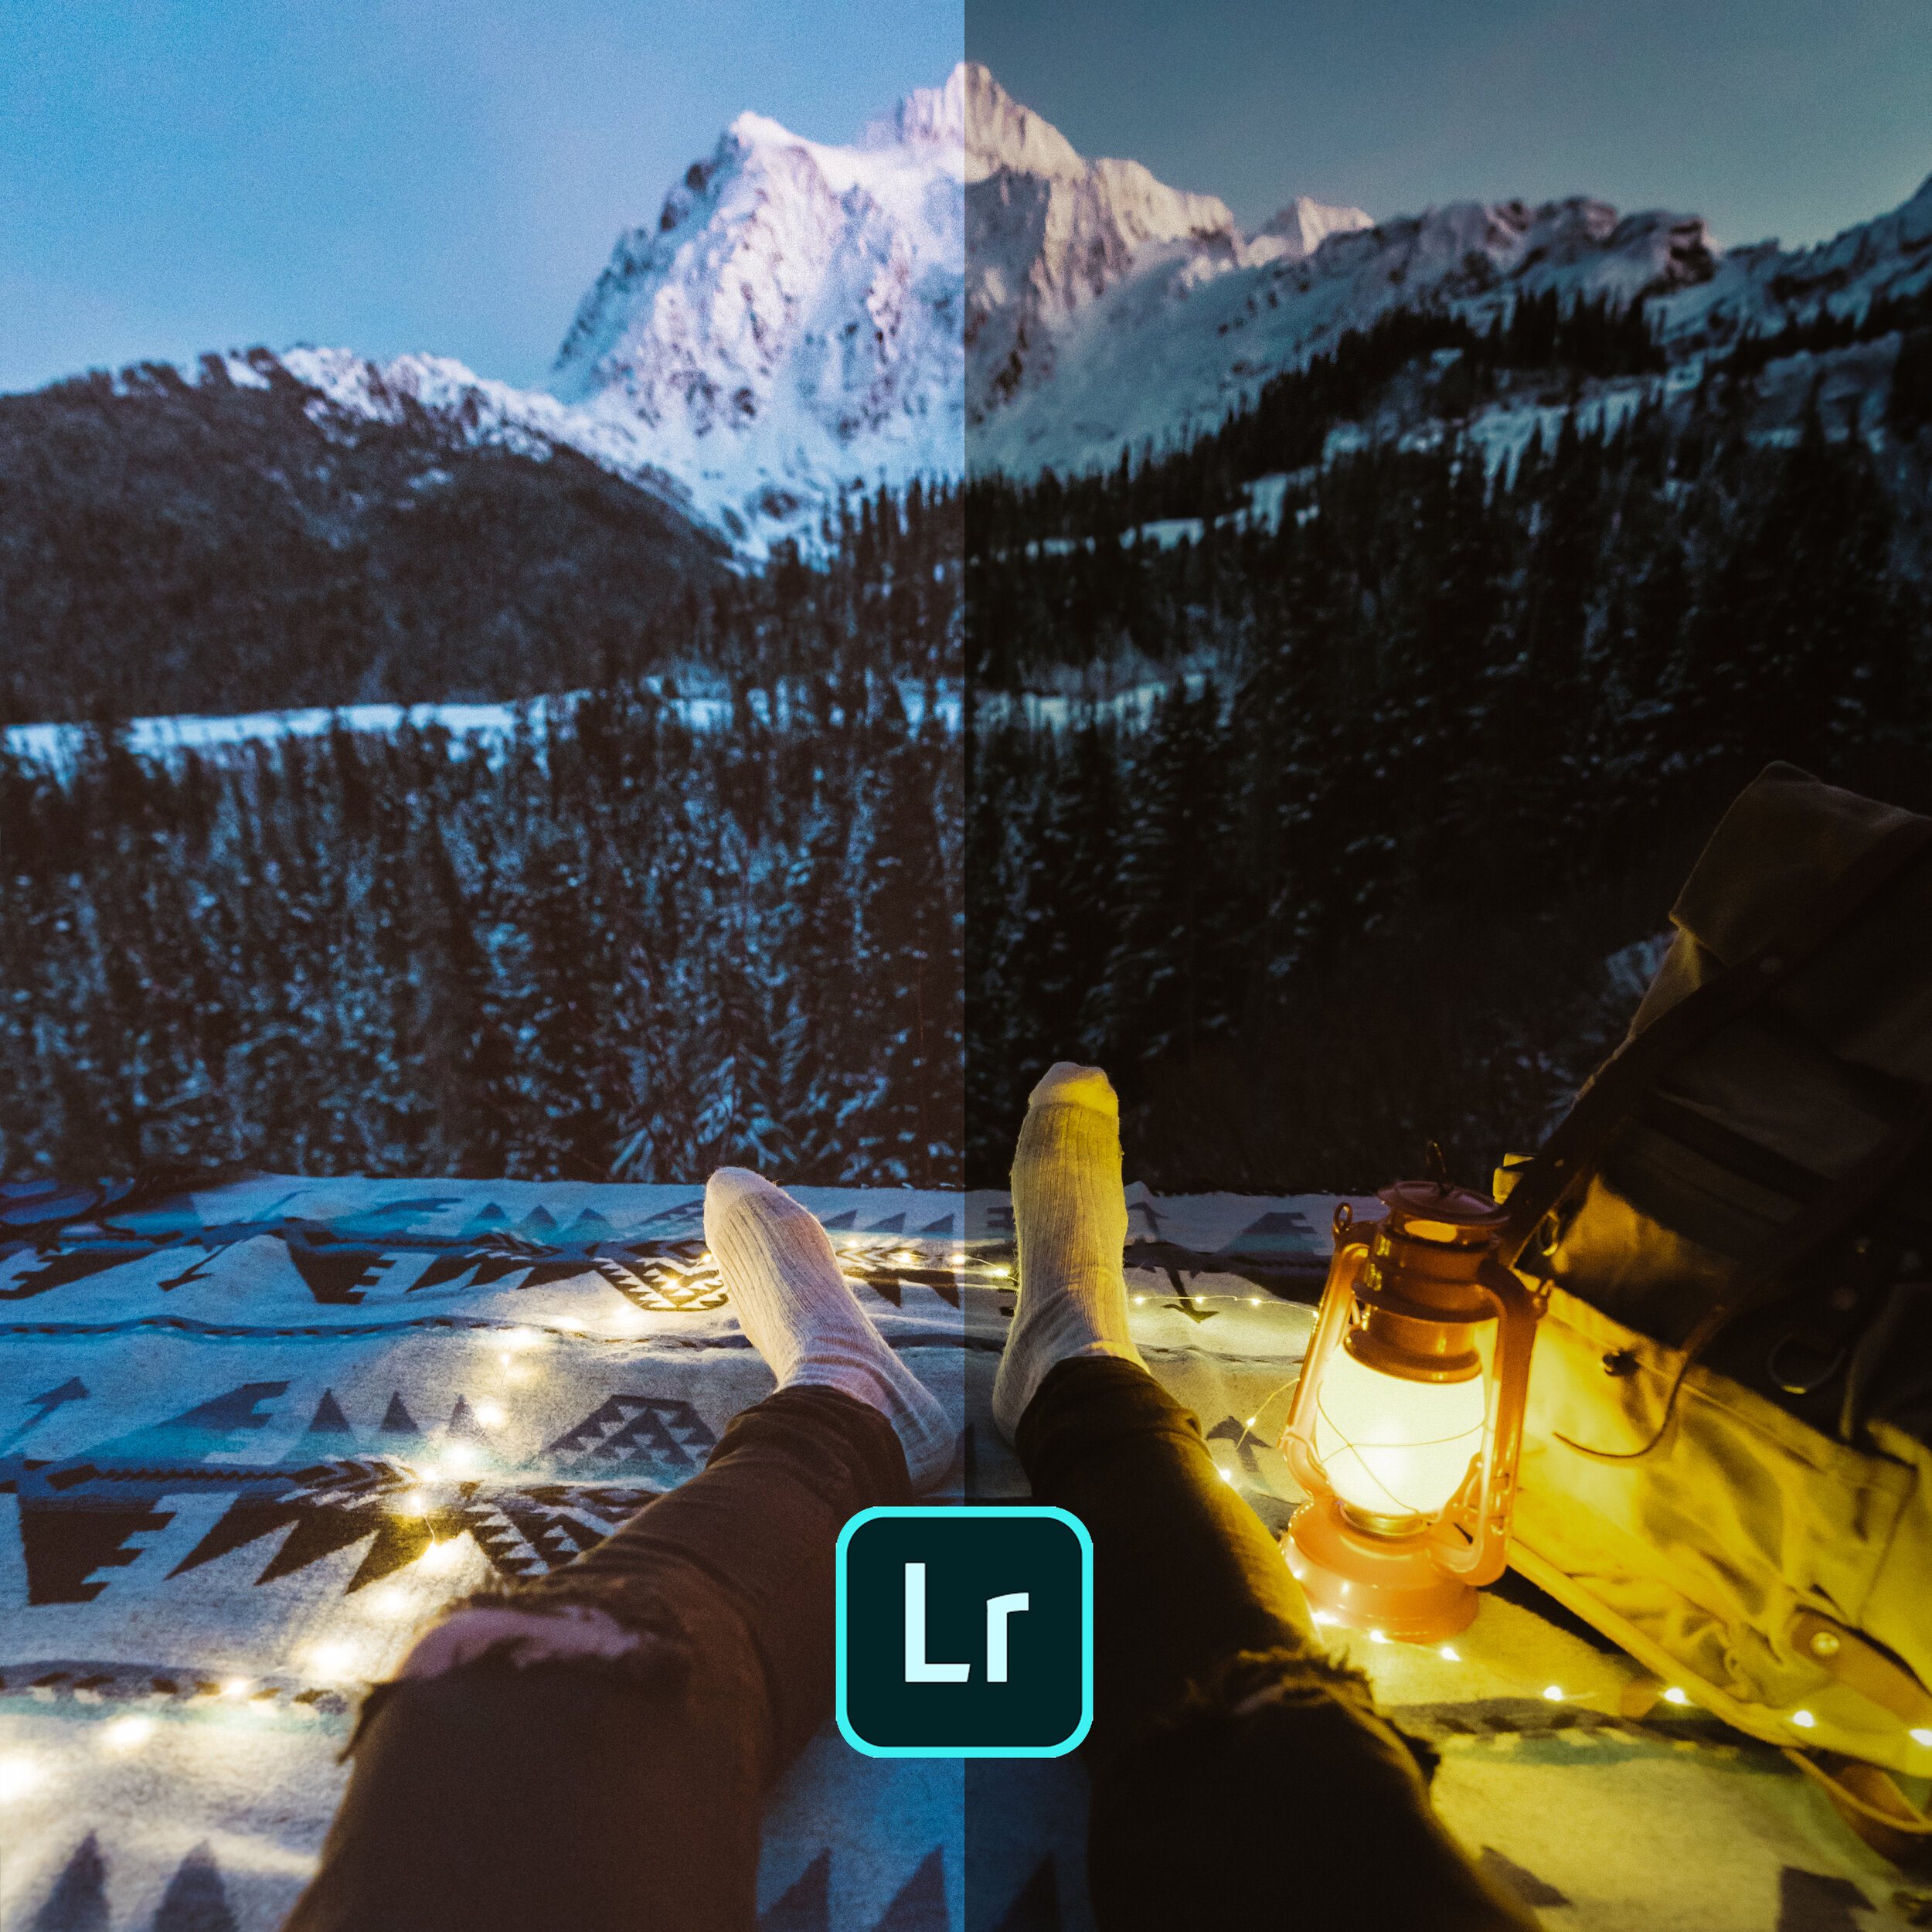 Presets. - Includes install guide and walkthrough of my editing process.